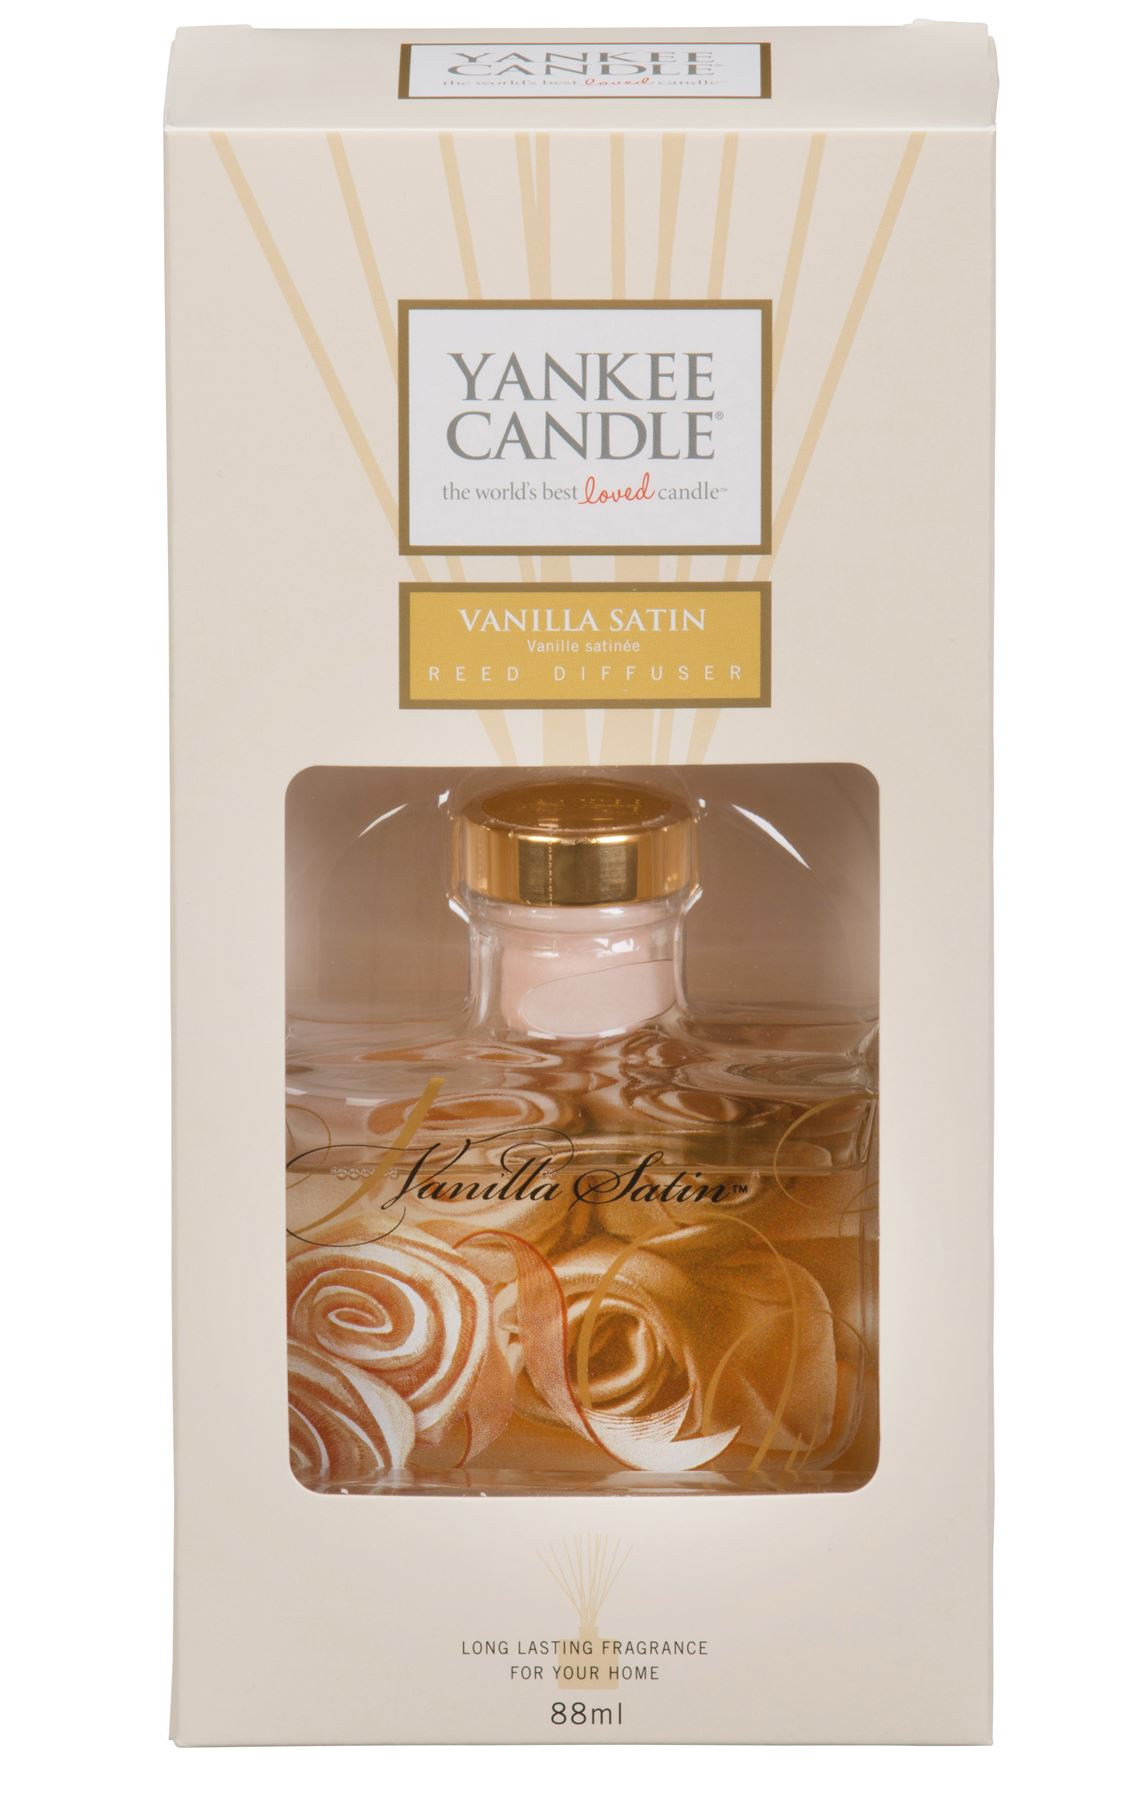 Yankee-Candle-Signature-Reed-Diffusers-Choice-of-Fragrances-New-Packaging